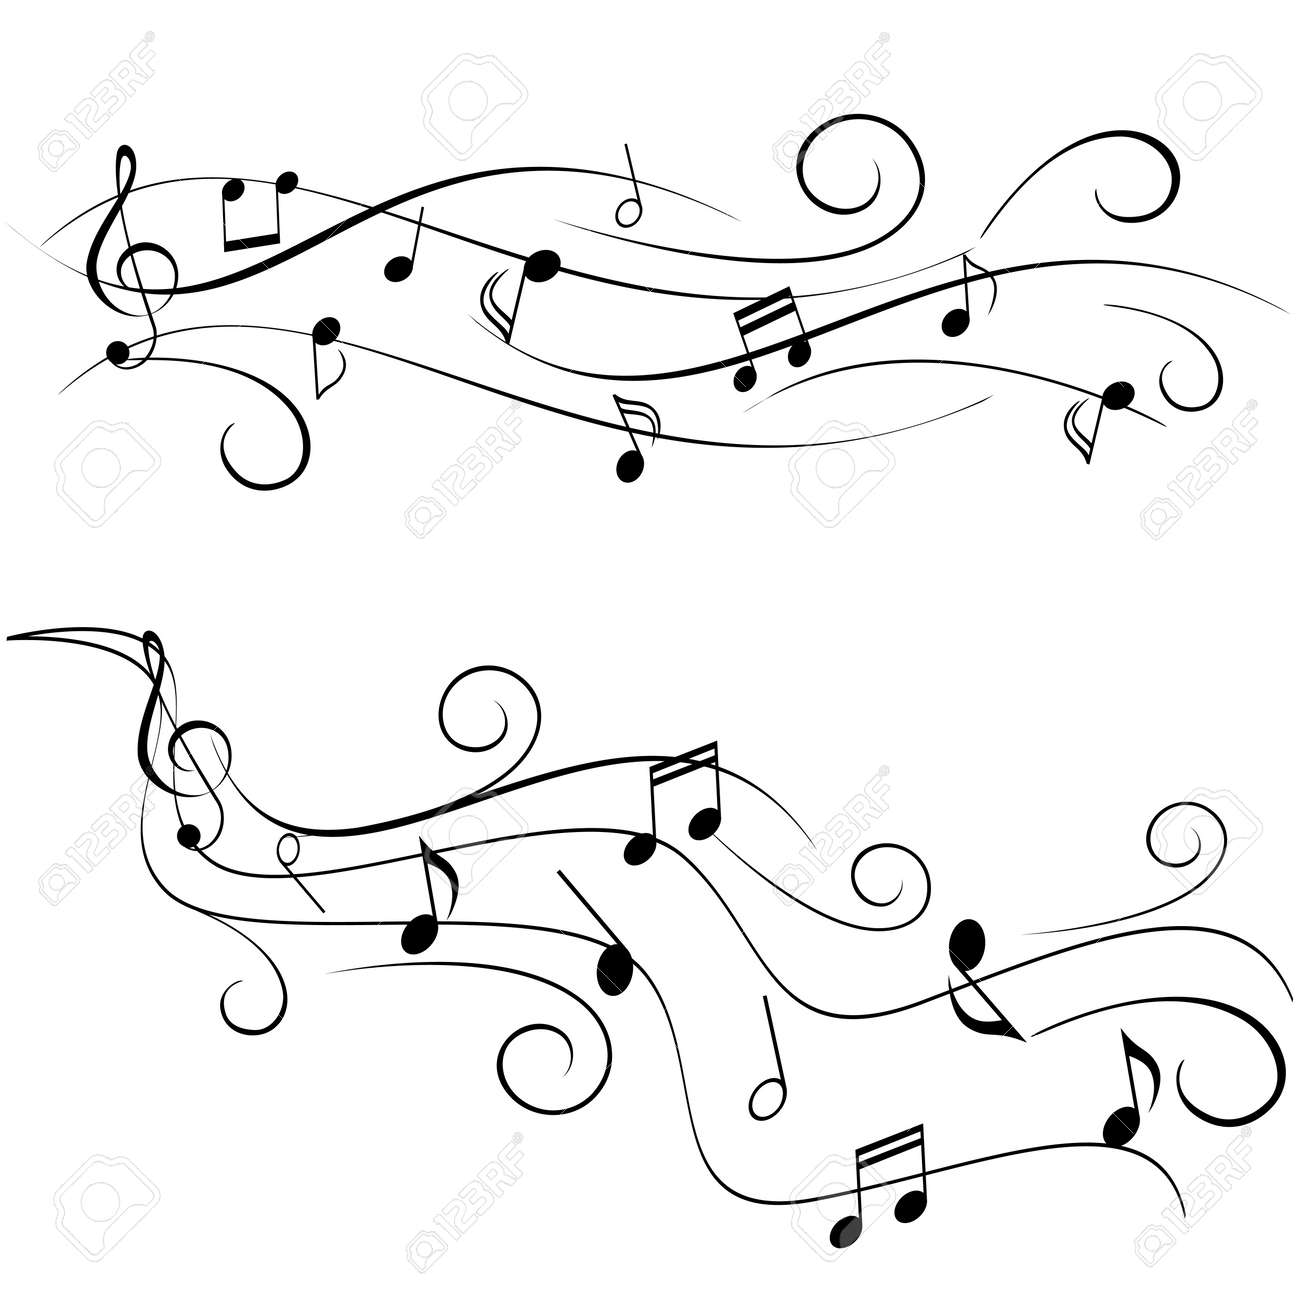 Various music notes on swirly staff - 23019479